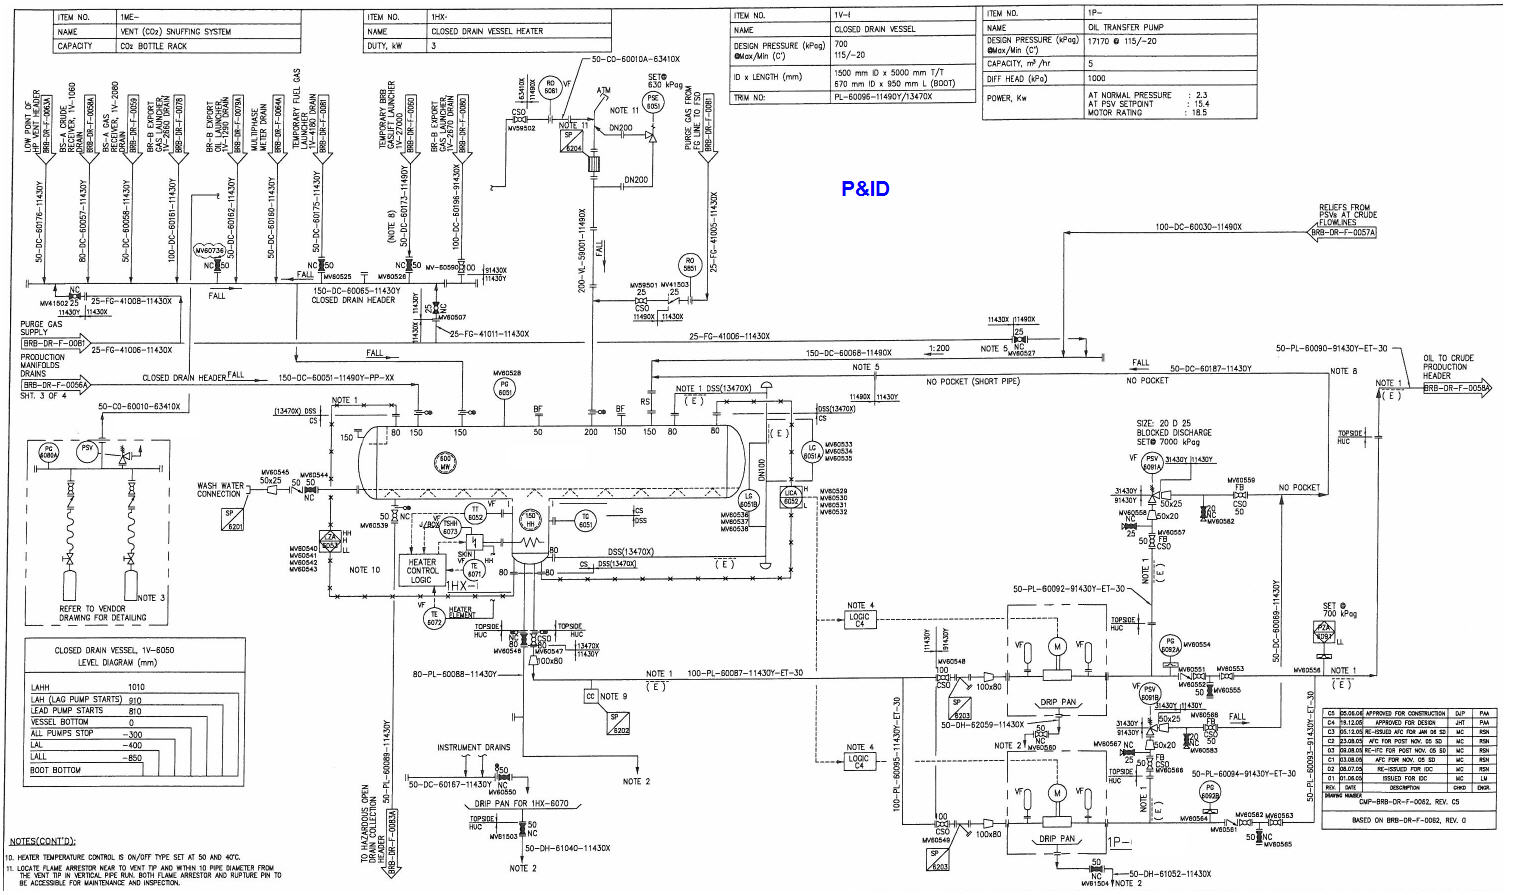 piping and instrumentation diagram video piping and instrumentation diagram nomenclature p id piping instrumentation diagram wiring library